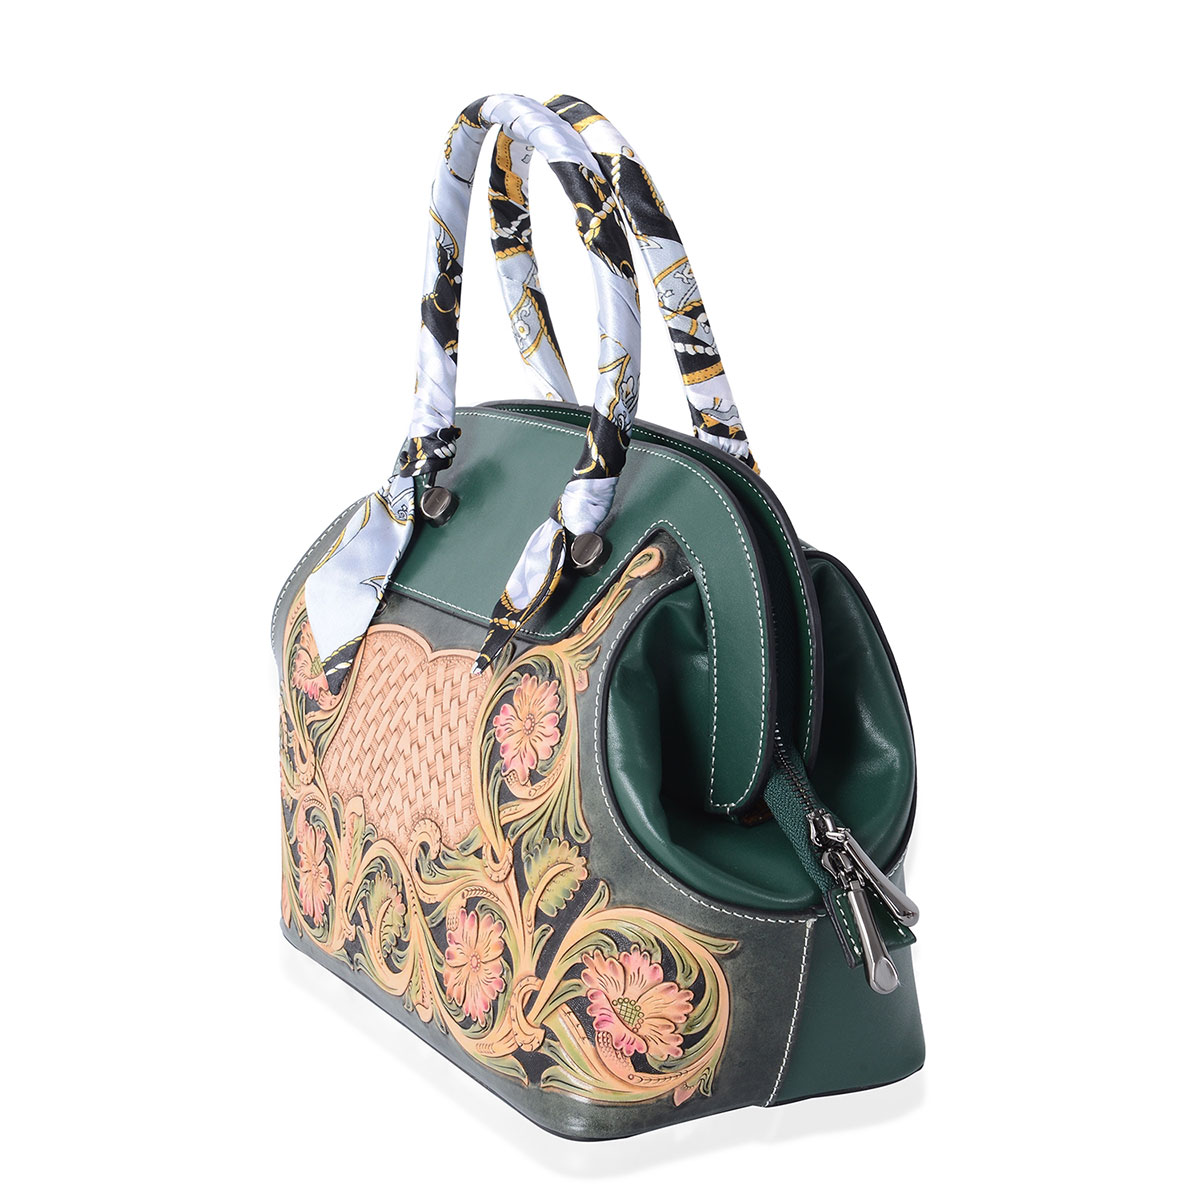 3b7a1a7c845d6 ... Luxury - Green 3D Engraved Flower Pattern Genuine Leather Tote Bag  (12x6x9 in) ...